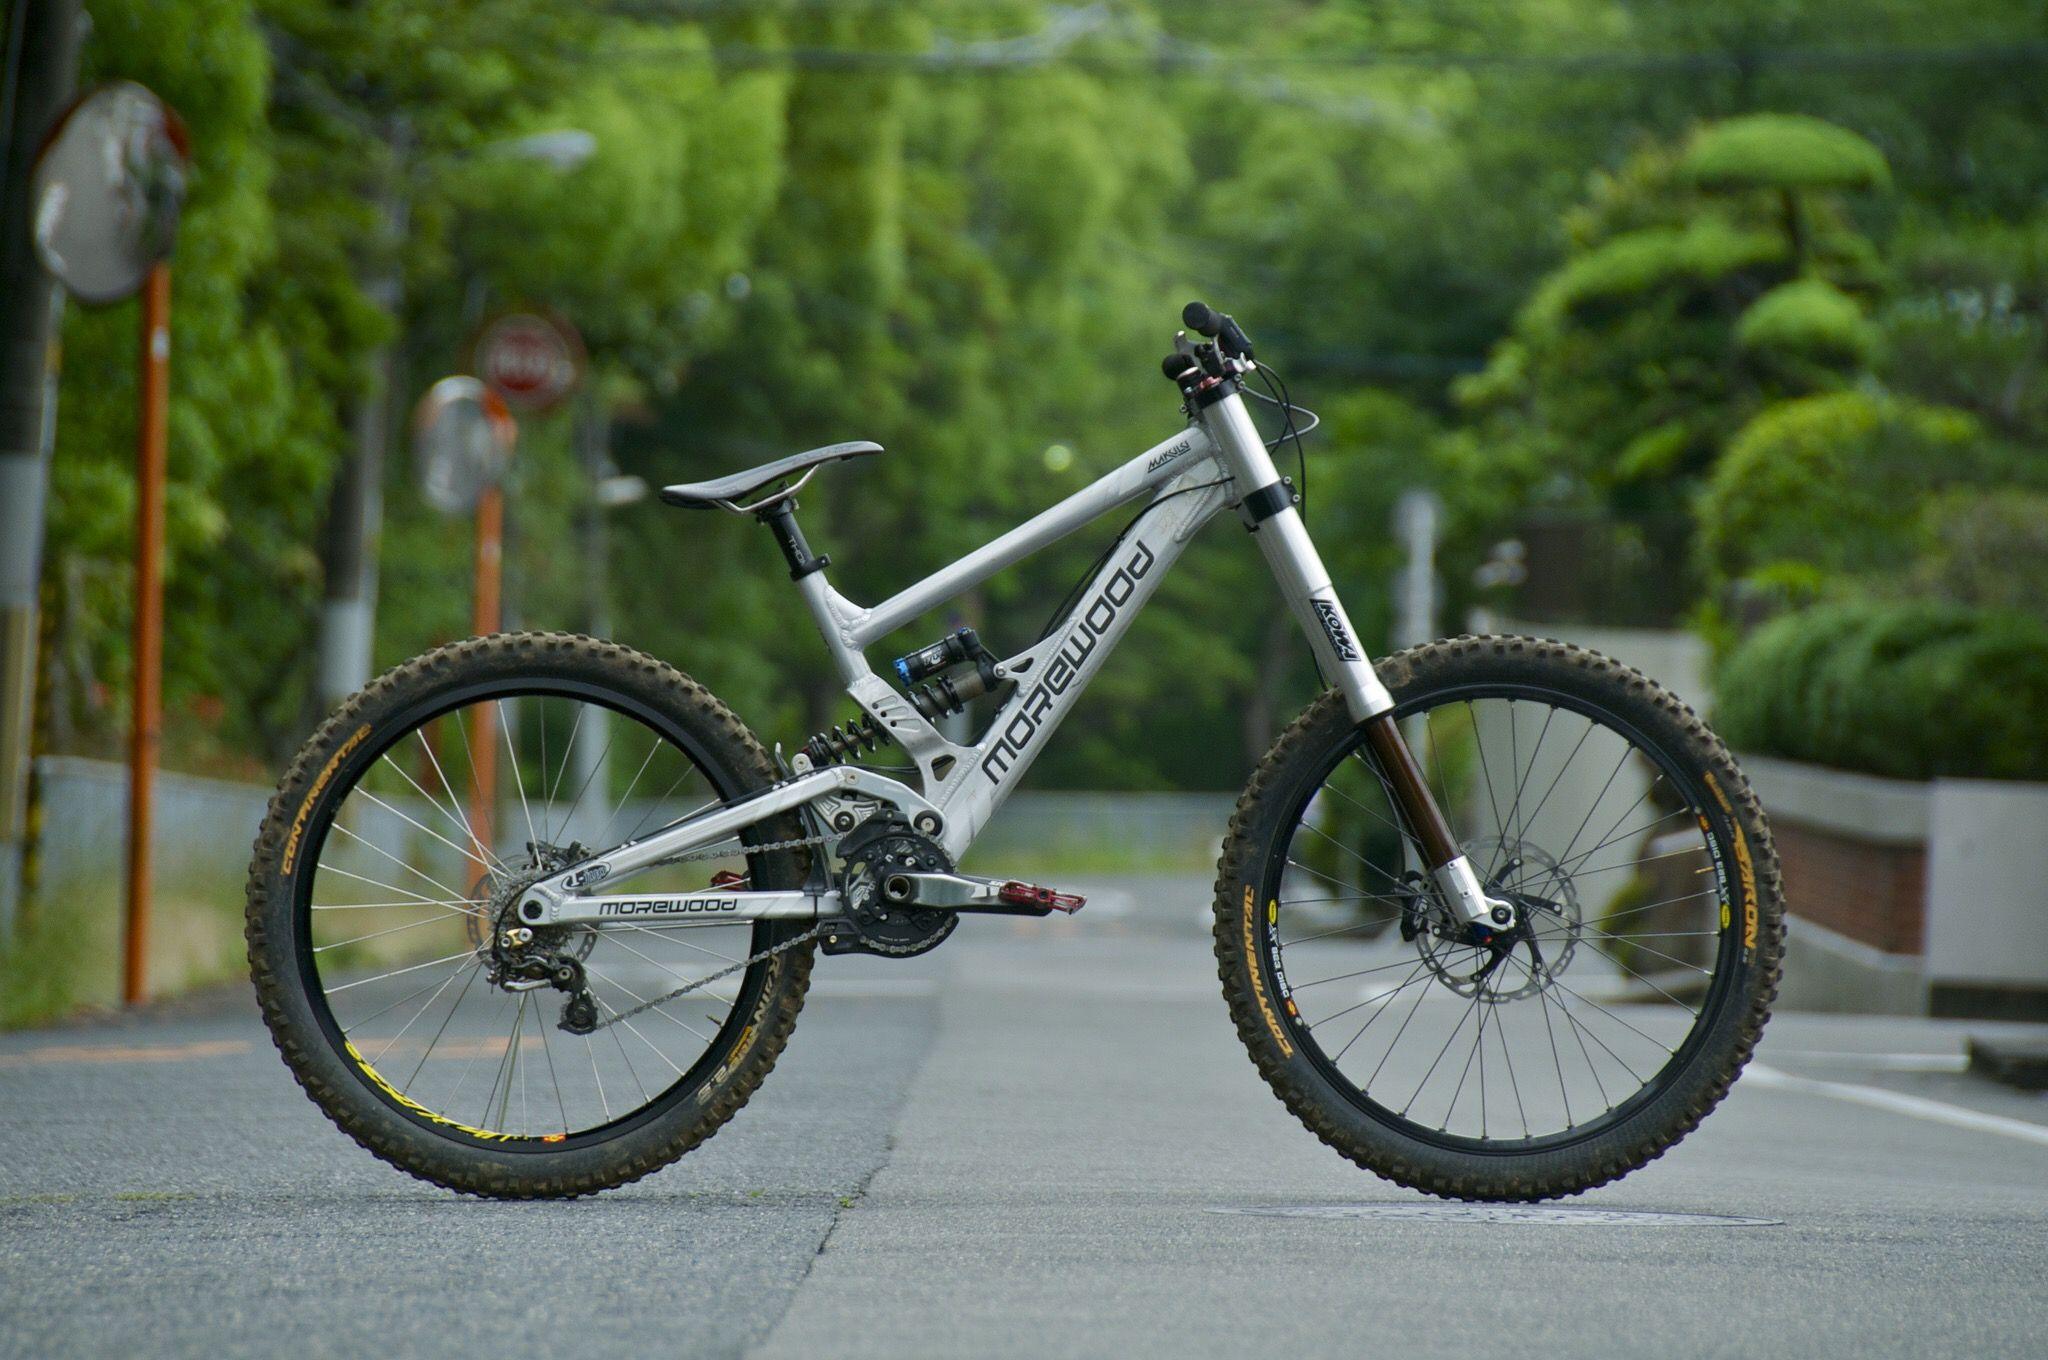 Morewood Makulu 26 and Fork by Kowa | Cycles | Pinterest | MTB ...